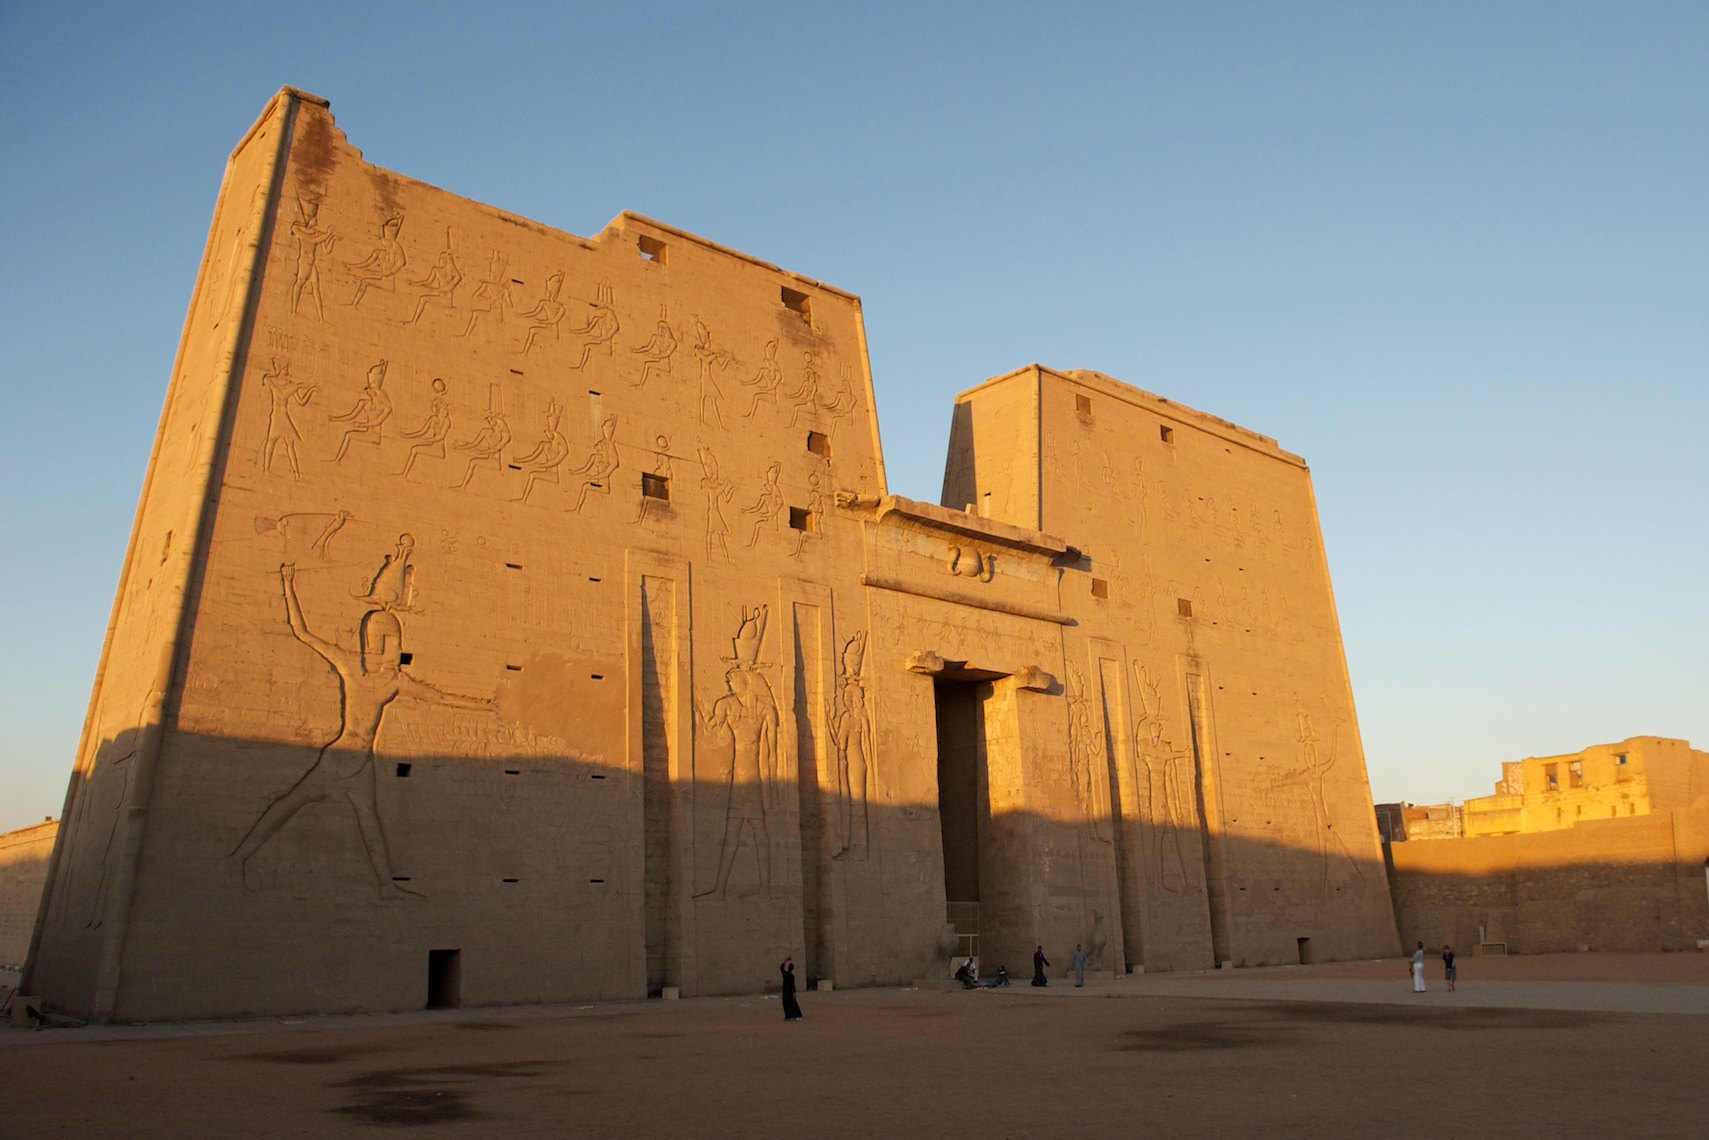 Barth_Egypt_temple 007.jpg